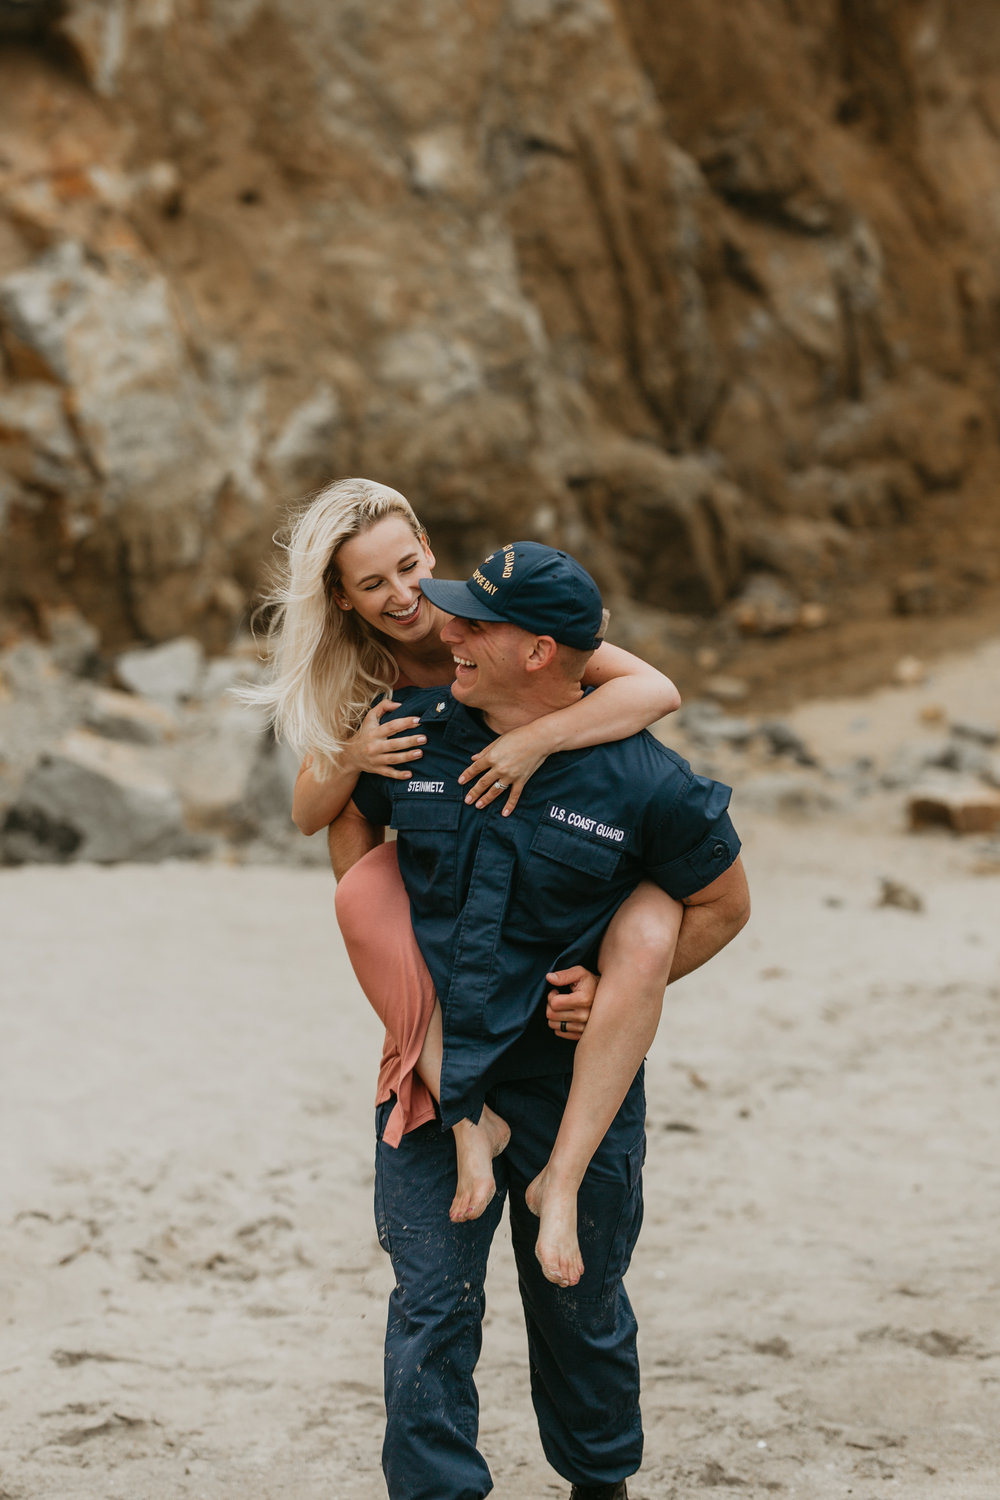 nicole-daacke-photography-adventurous-elopement-traveling-destination-wedding-photographer-national-park-engagement-sessions-5419.jpg